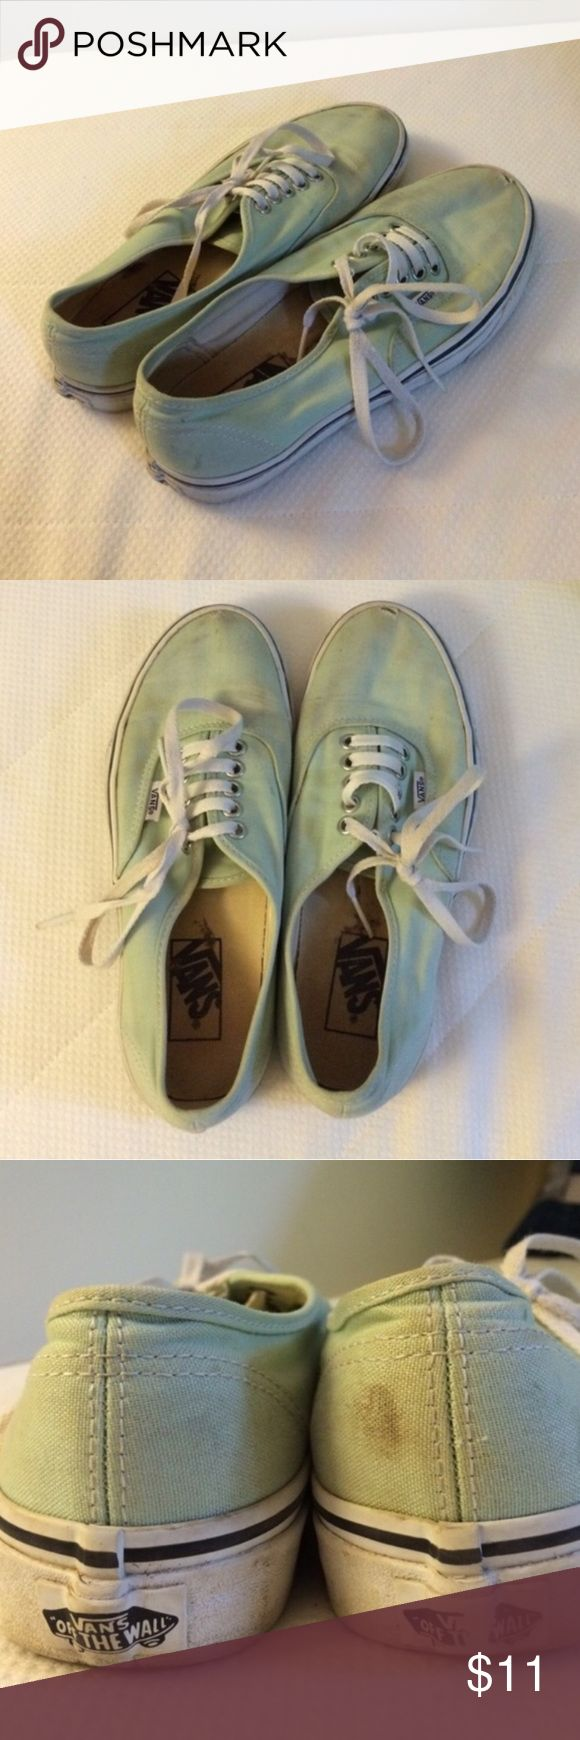 Teal VANS Teal/green color, small hole at the top of each shoe as shown in pics, Woman's size 8 Vans Shoes